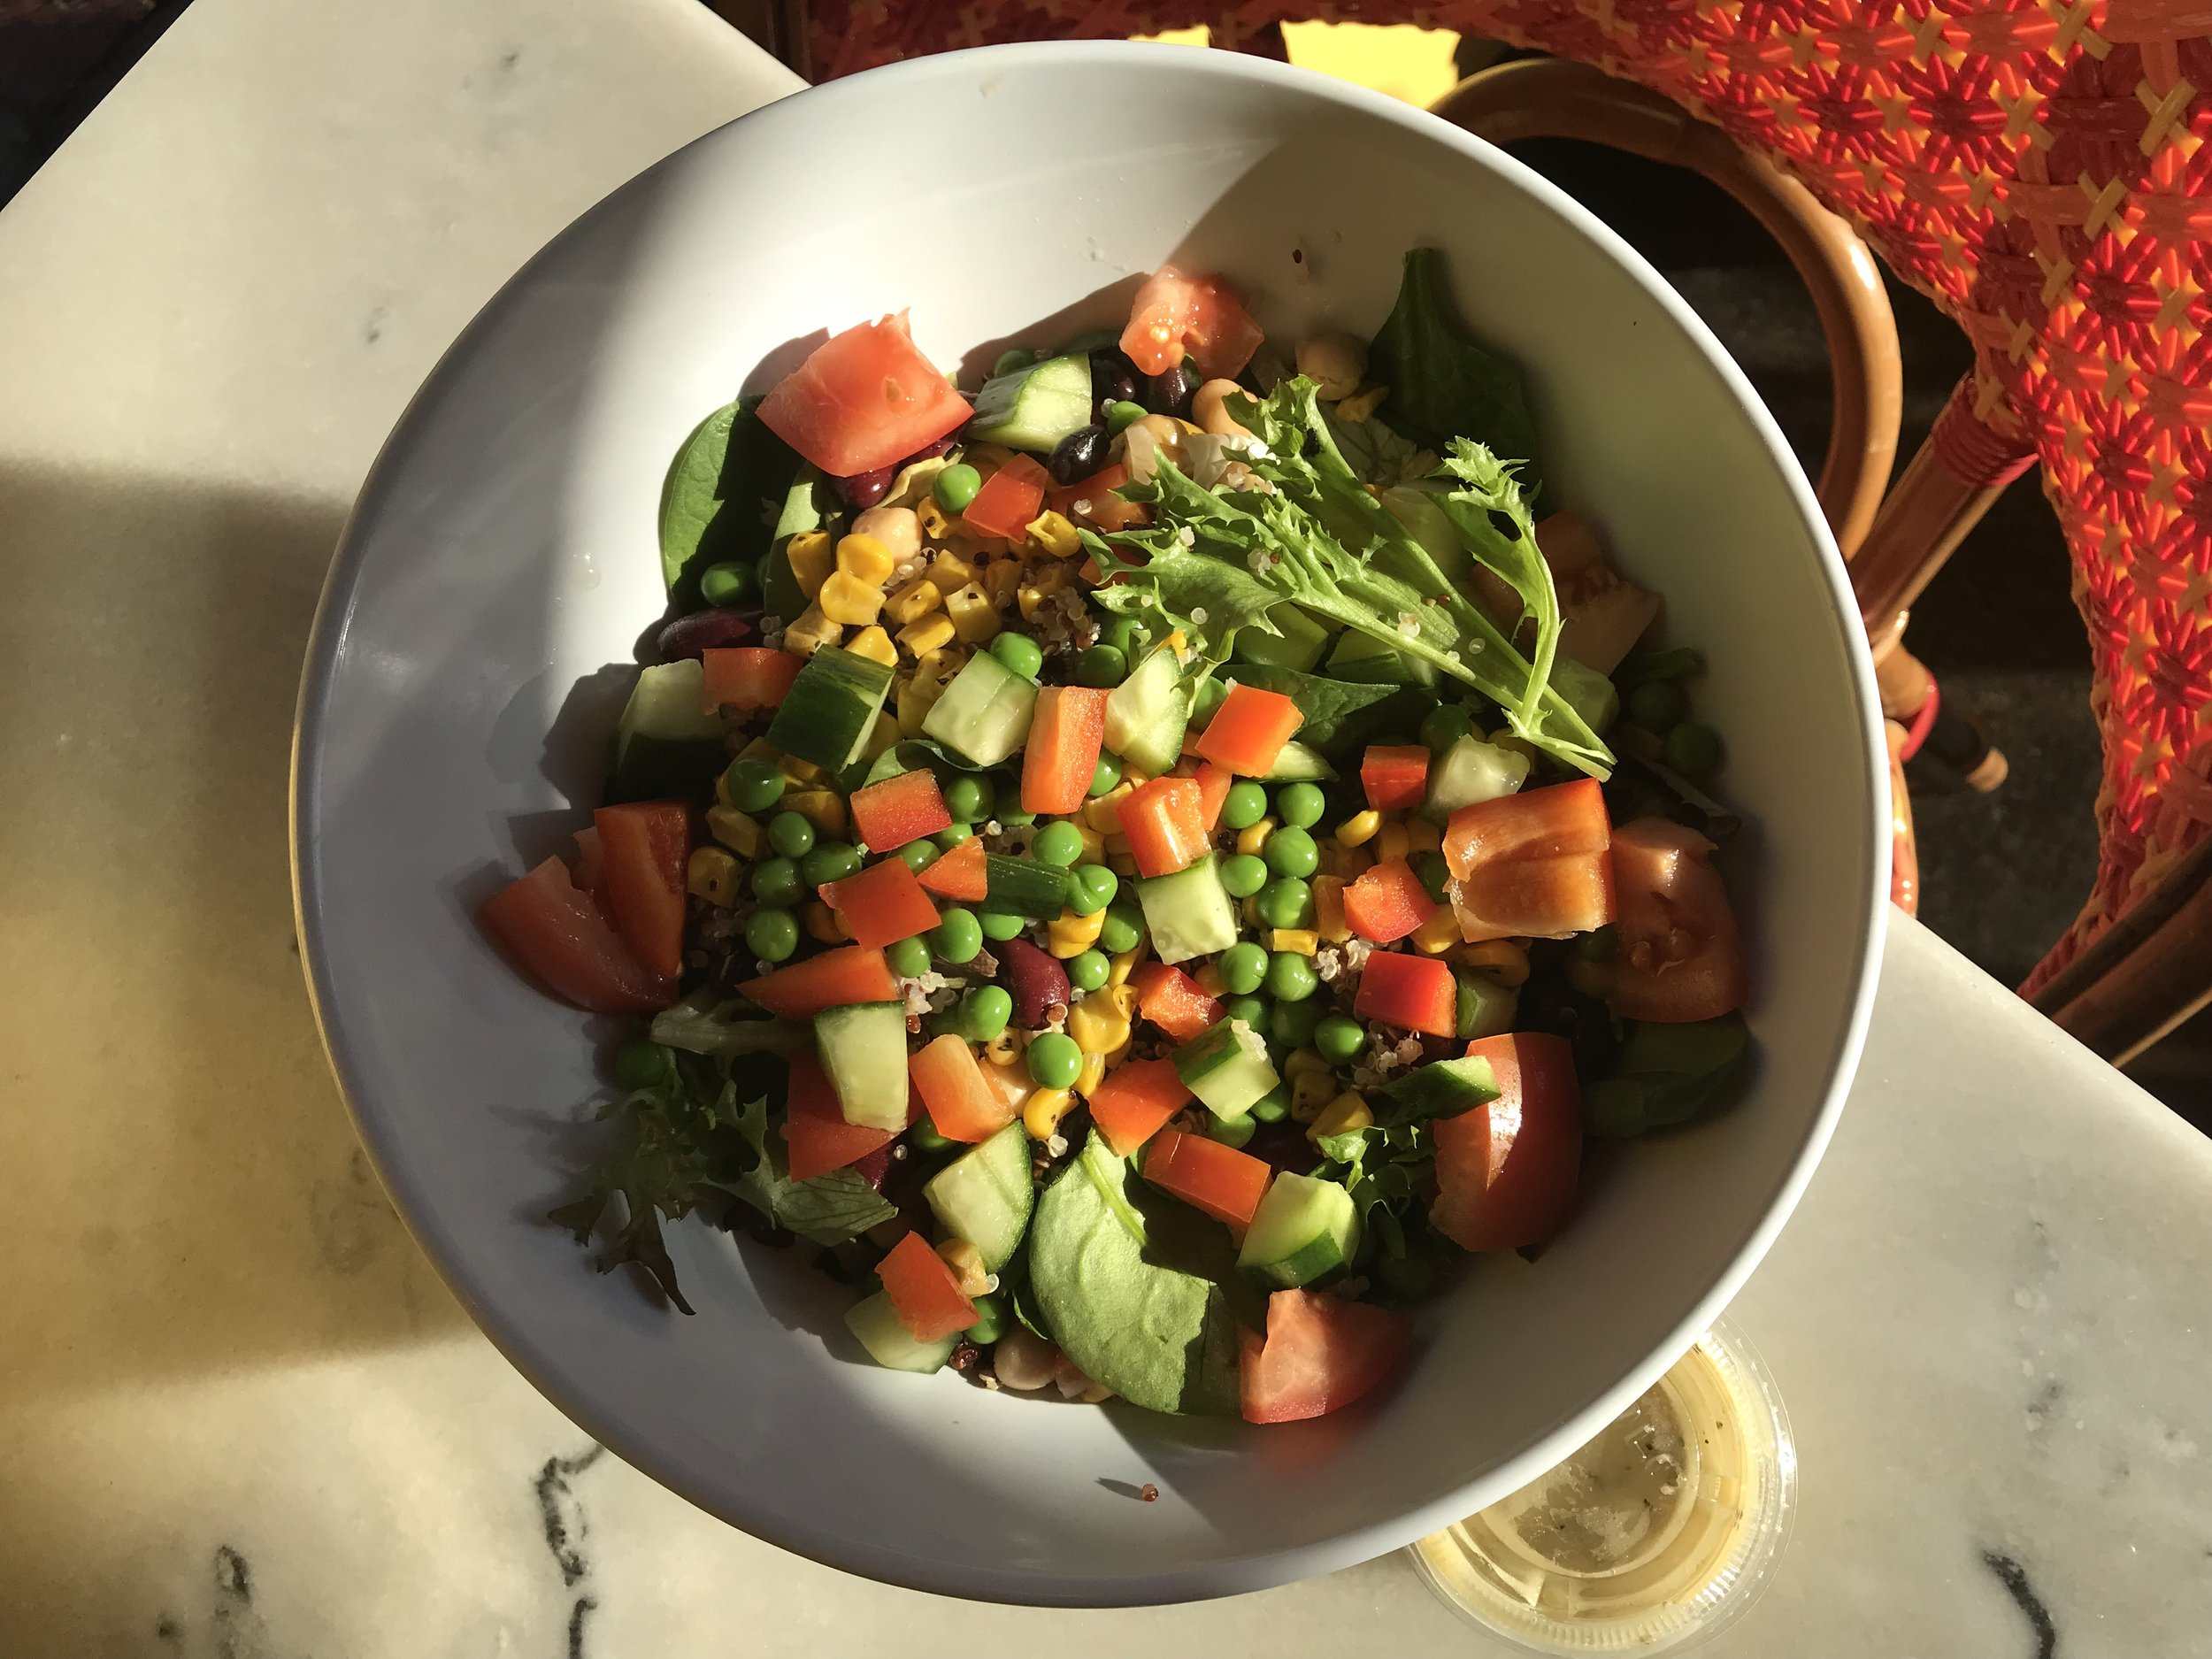 Veggie Protein Salad - Garbanzos, kidney beans, black beans, quinoa, roasted corn, peas, cucumber, and red pepper, on a bed of greens, served with lemon vinaigrette.